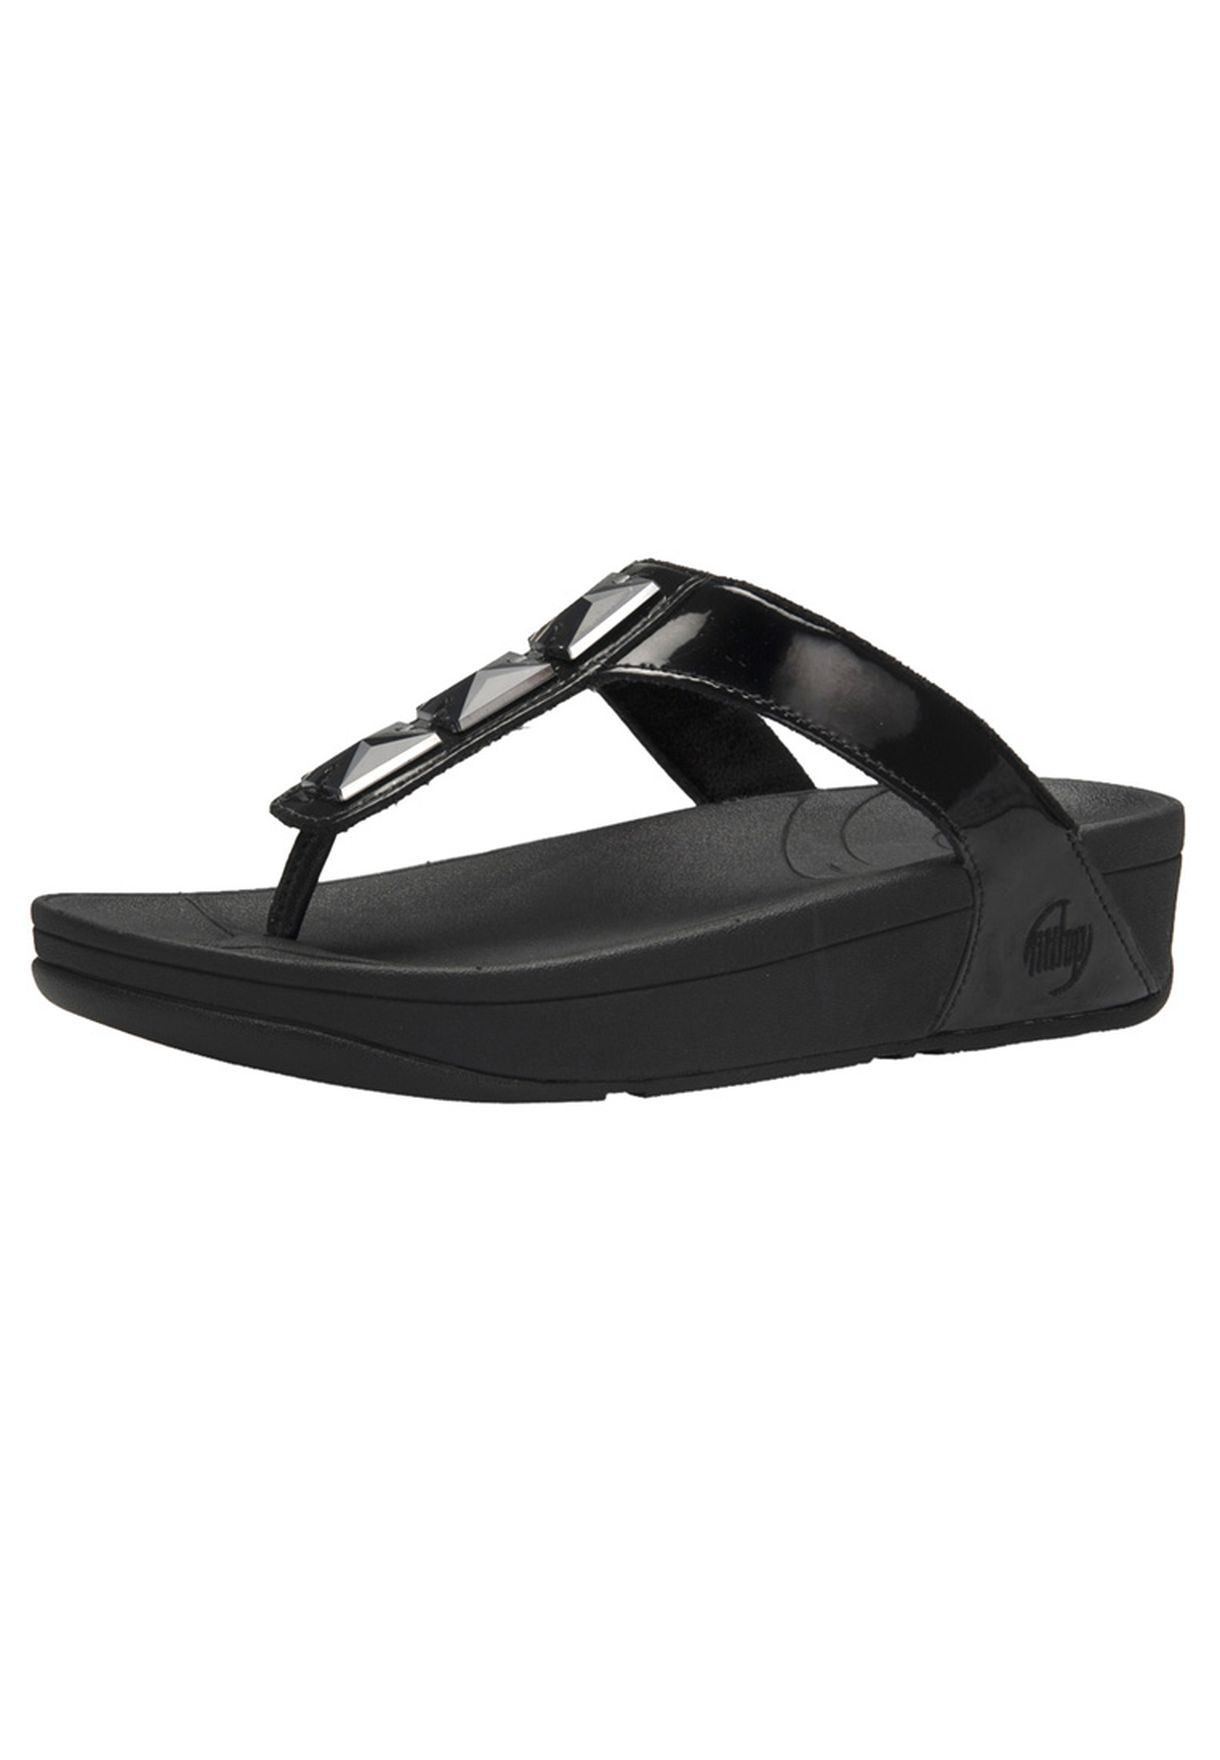 e5fb01665 Shop Fitflop black Casual Flat Sandals for Women in Kuwait ...